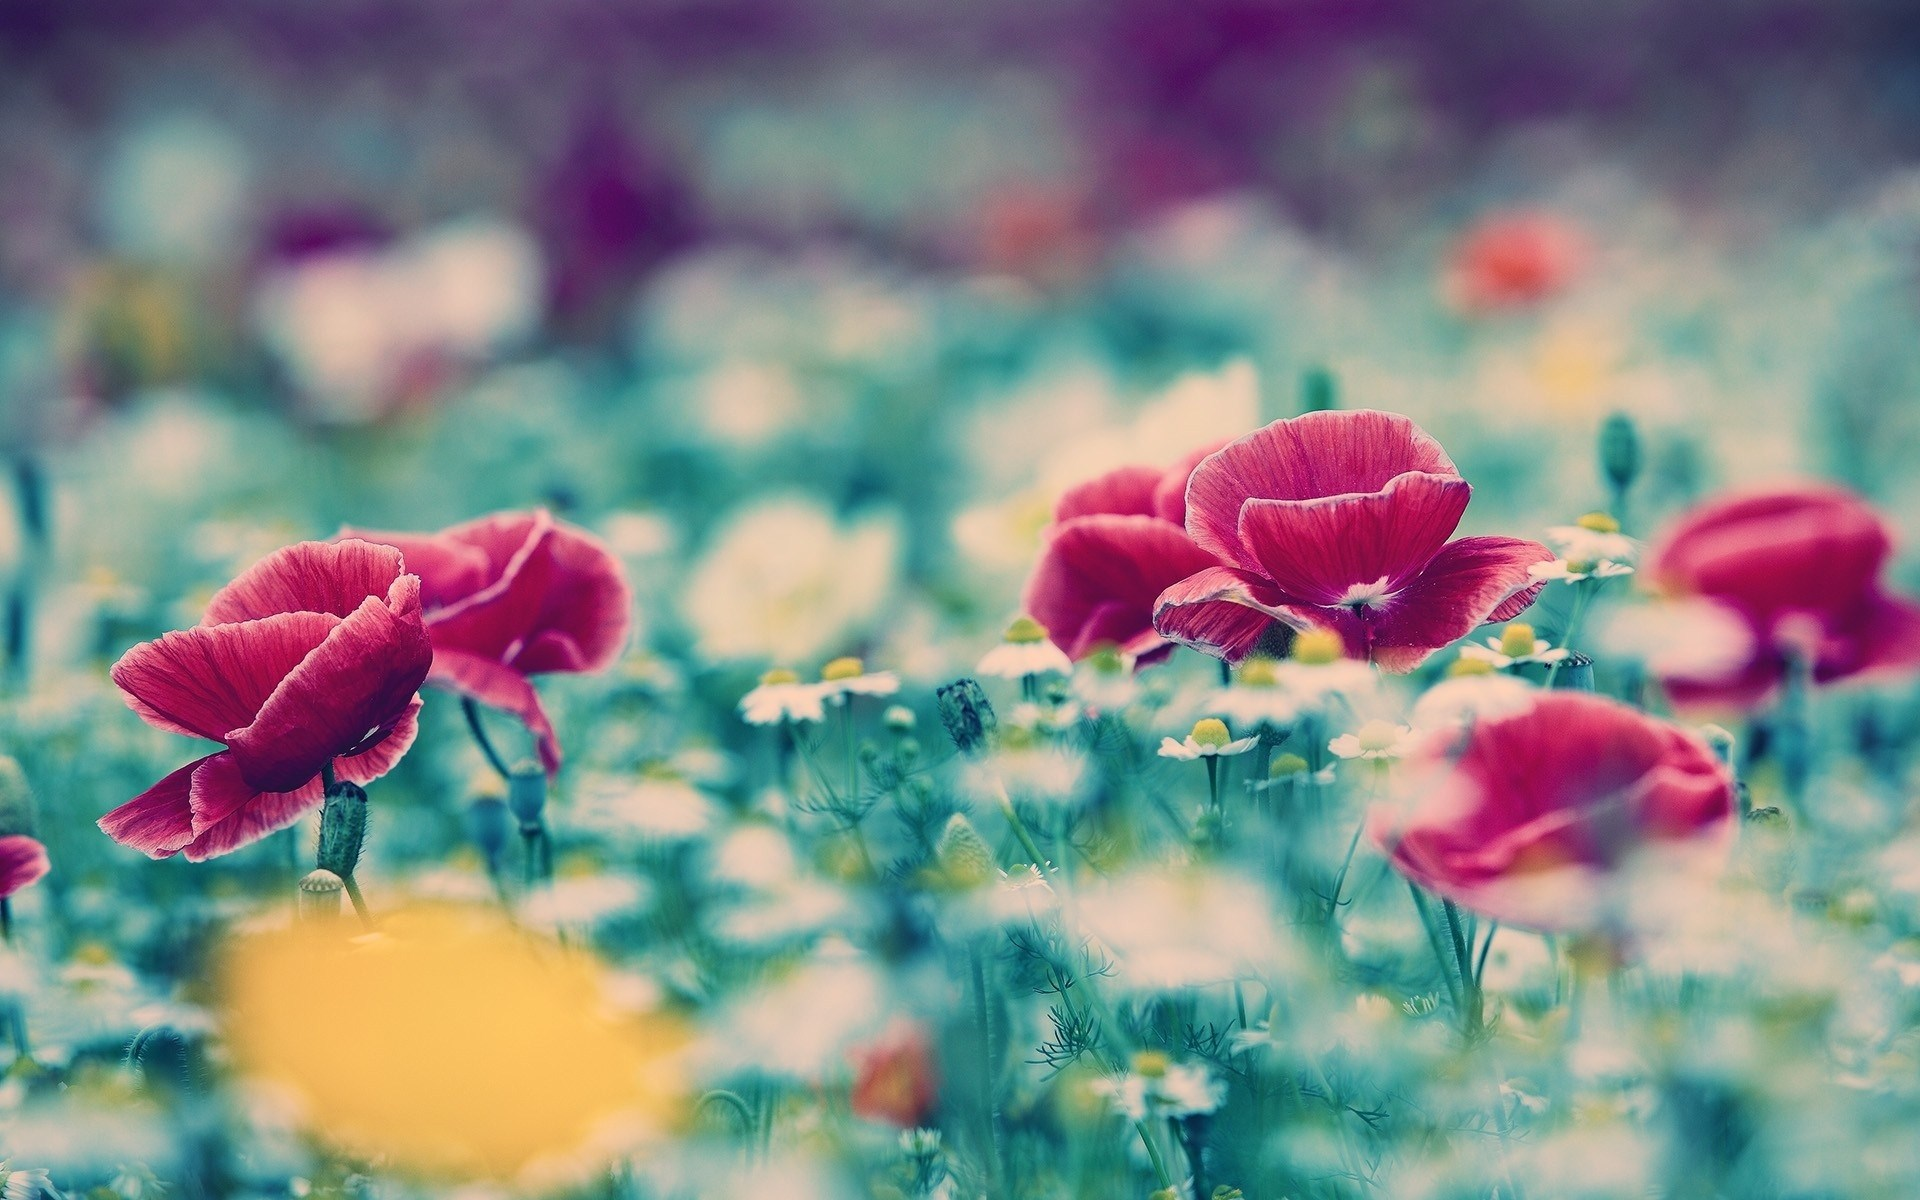 Flower Field Macro Wallpaper